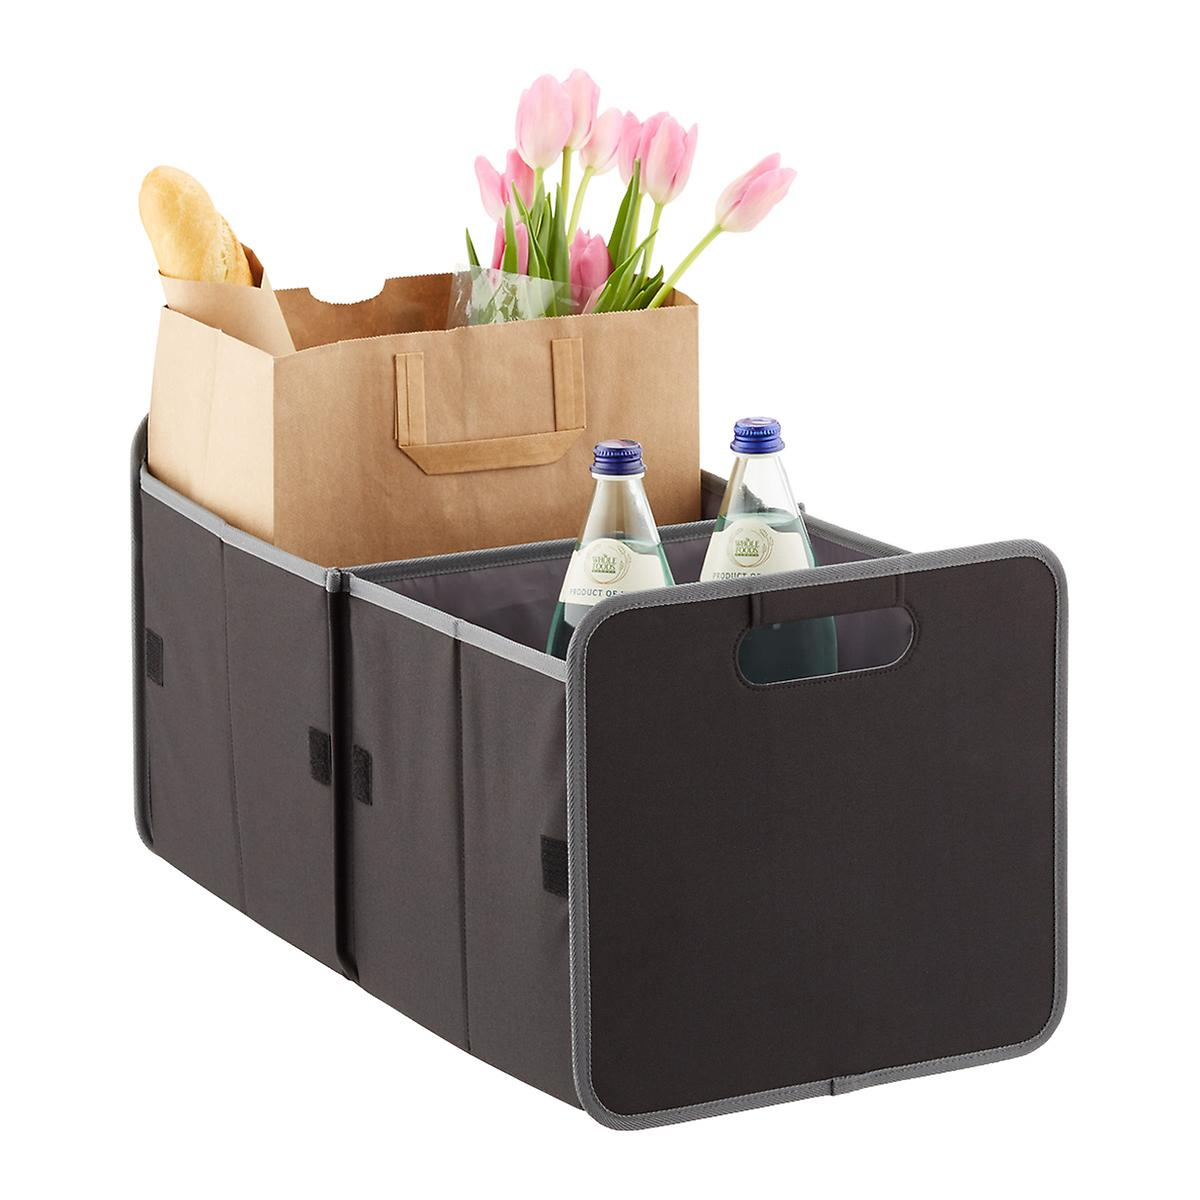 Foldable Trunk Organizers